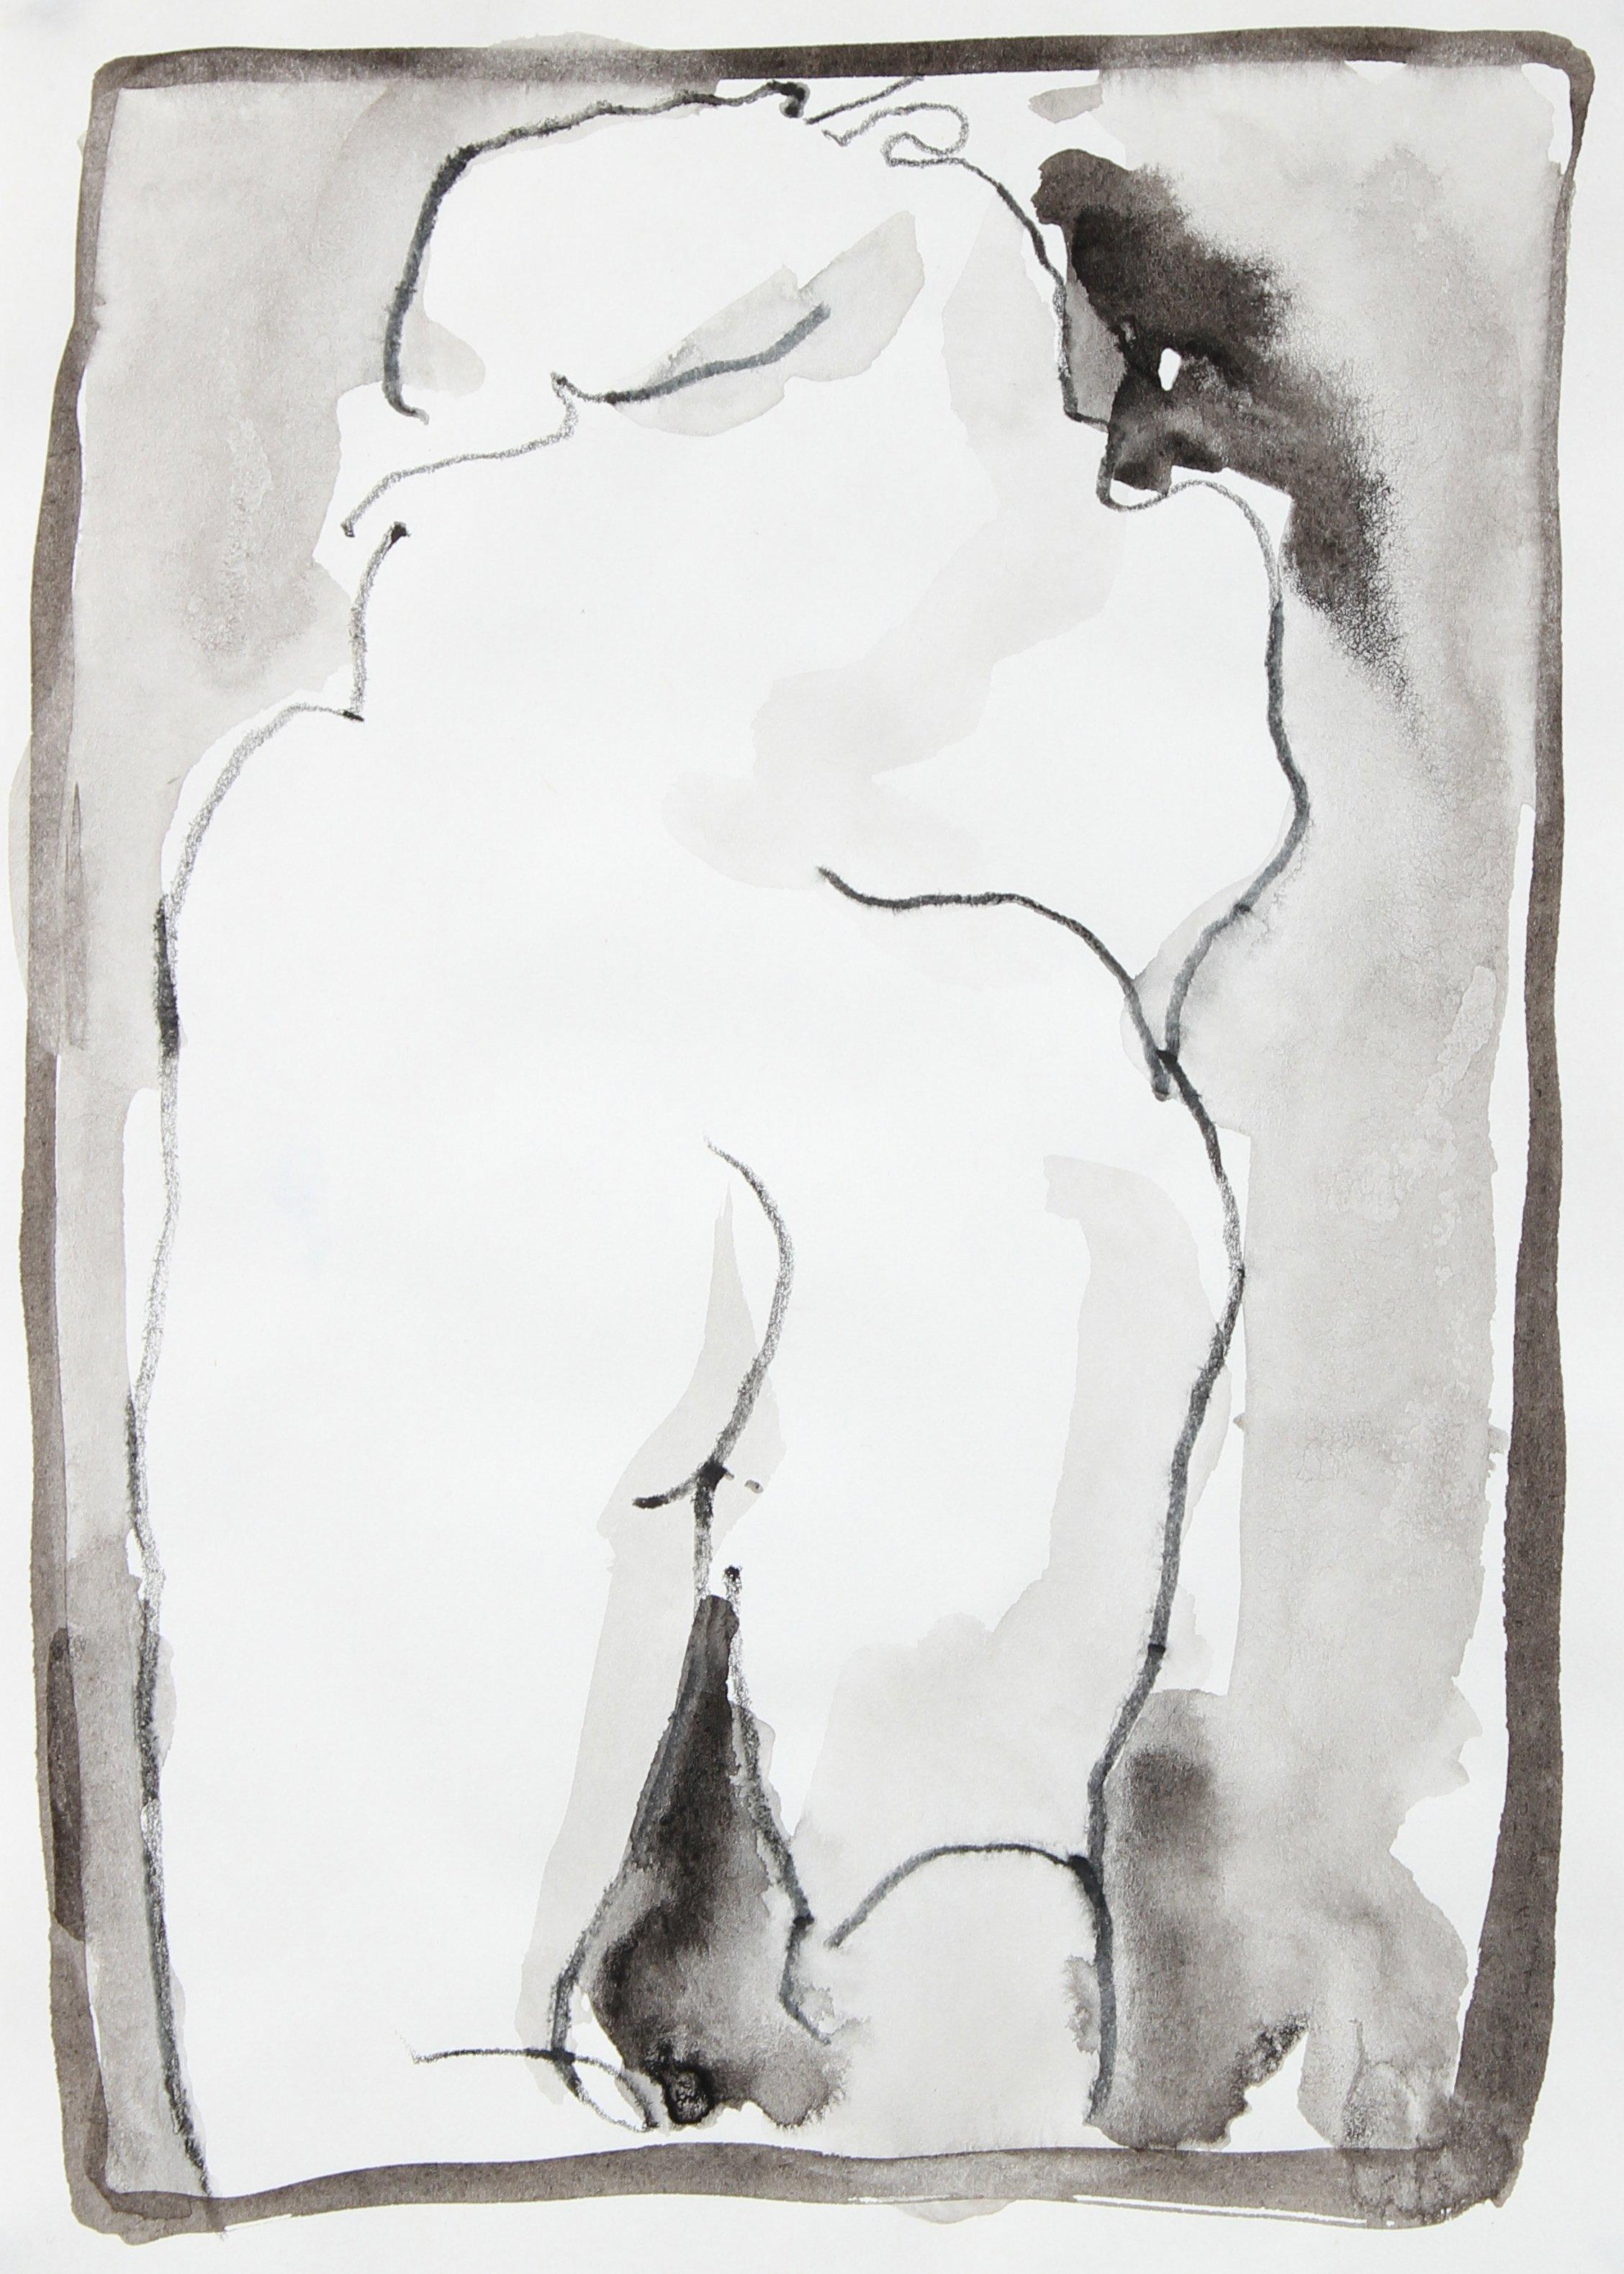 Abstracted Nude Figure Study 1995 Ink Wash and Colored Pencil